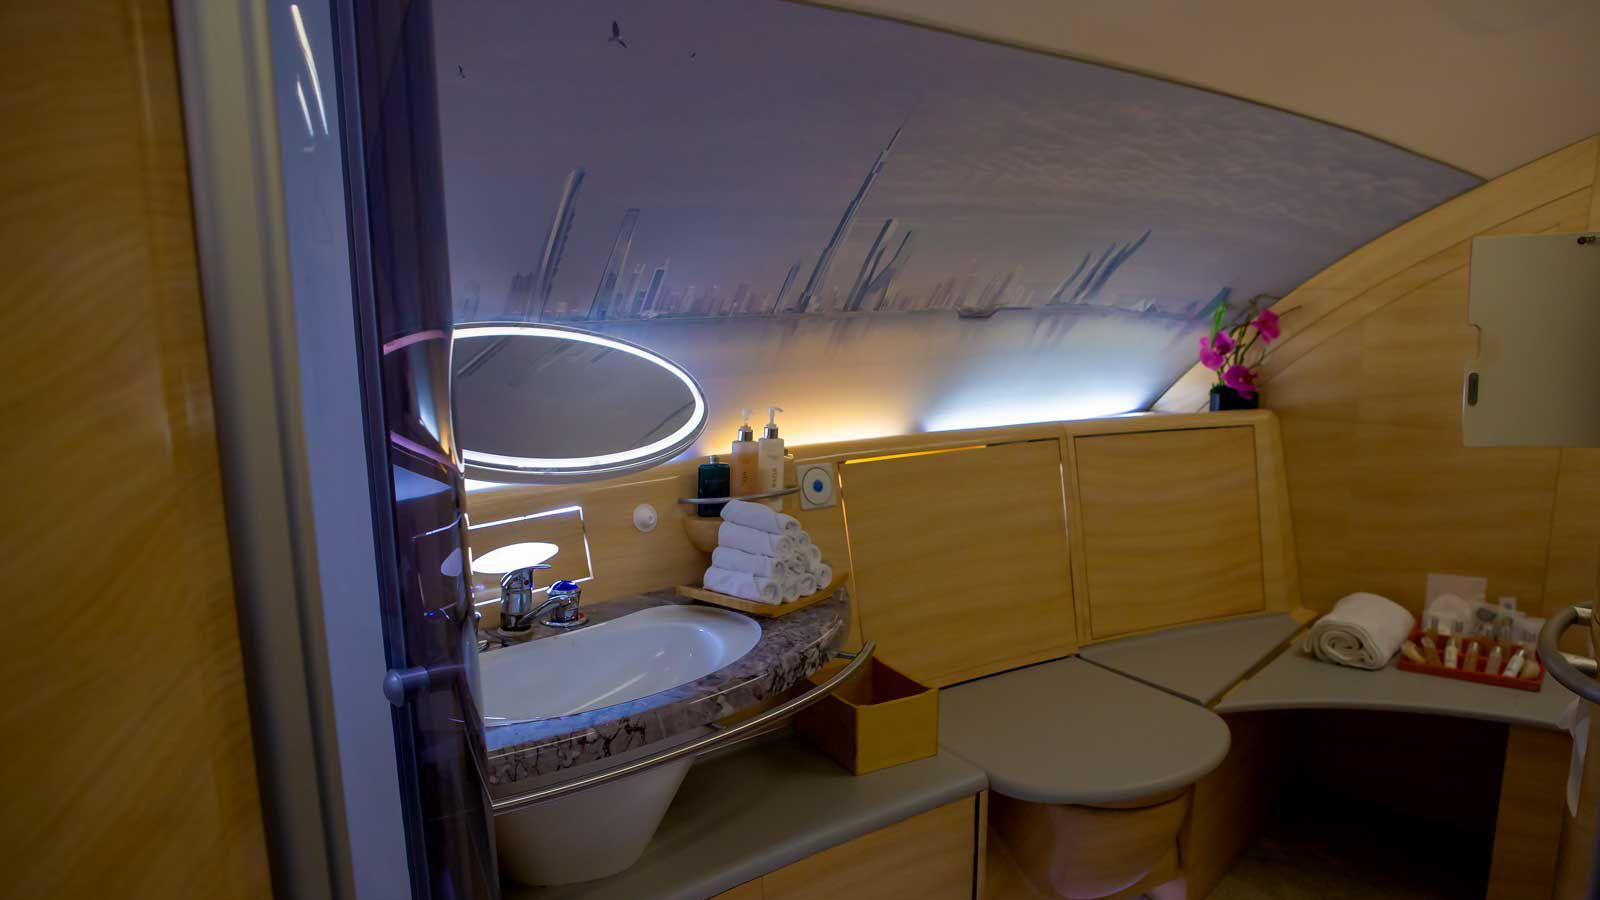 The replica aircraft interiors even include a replica of the airline's famous first class shower spa.